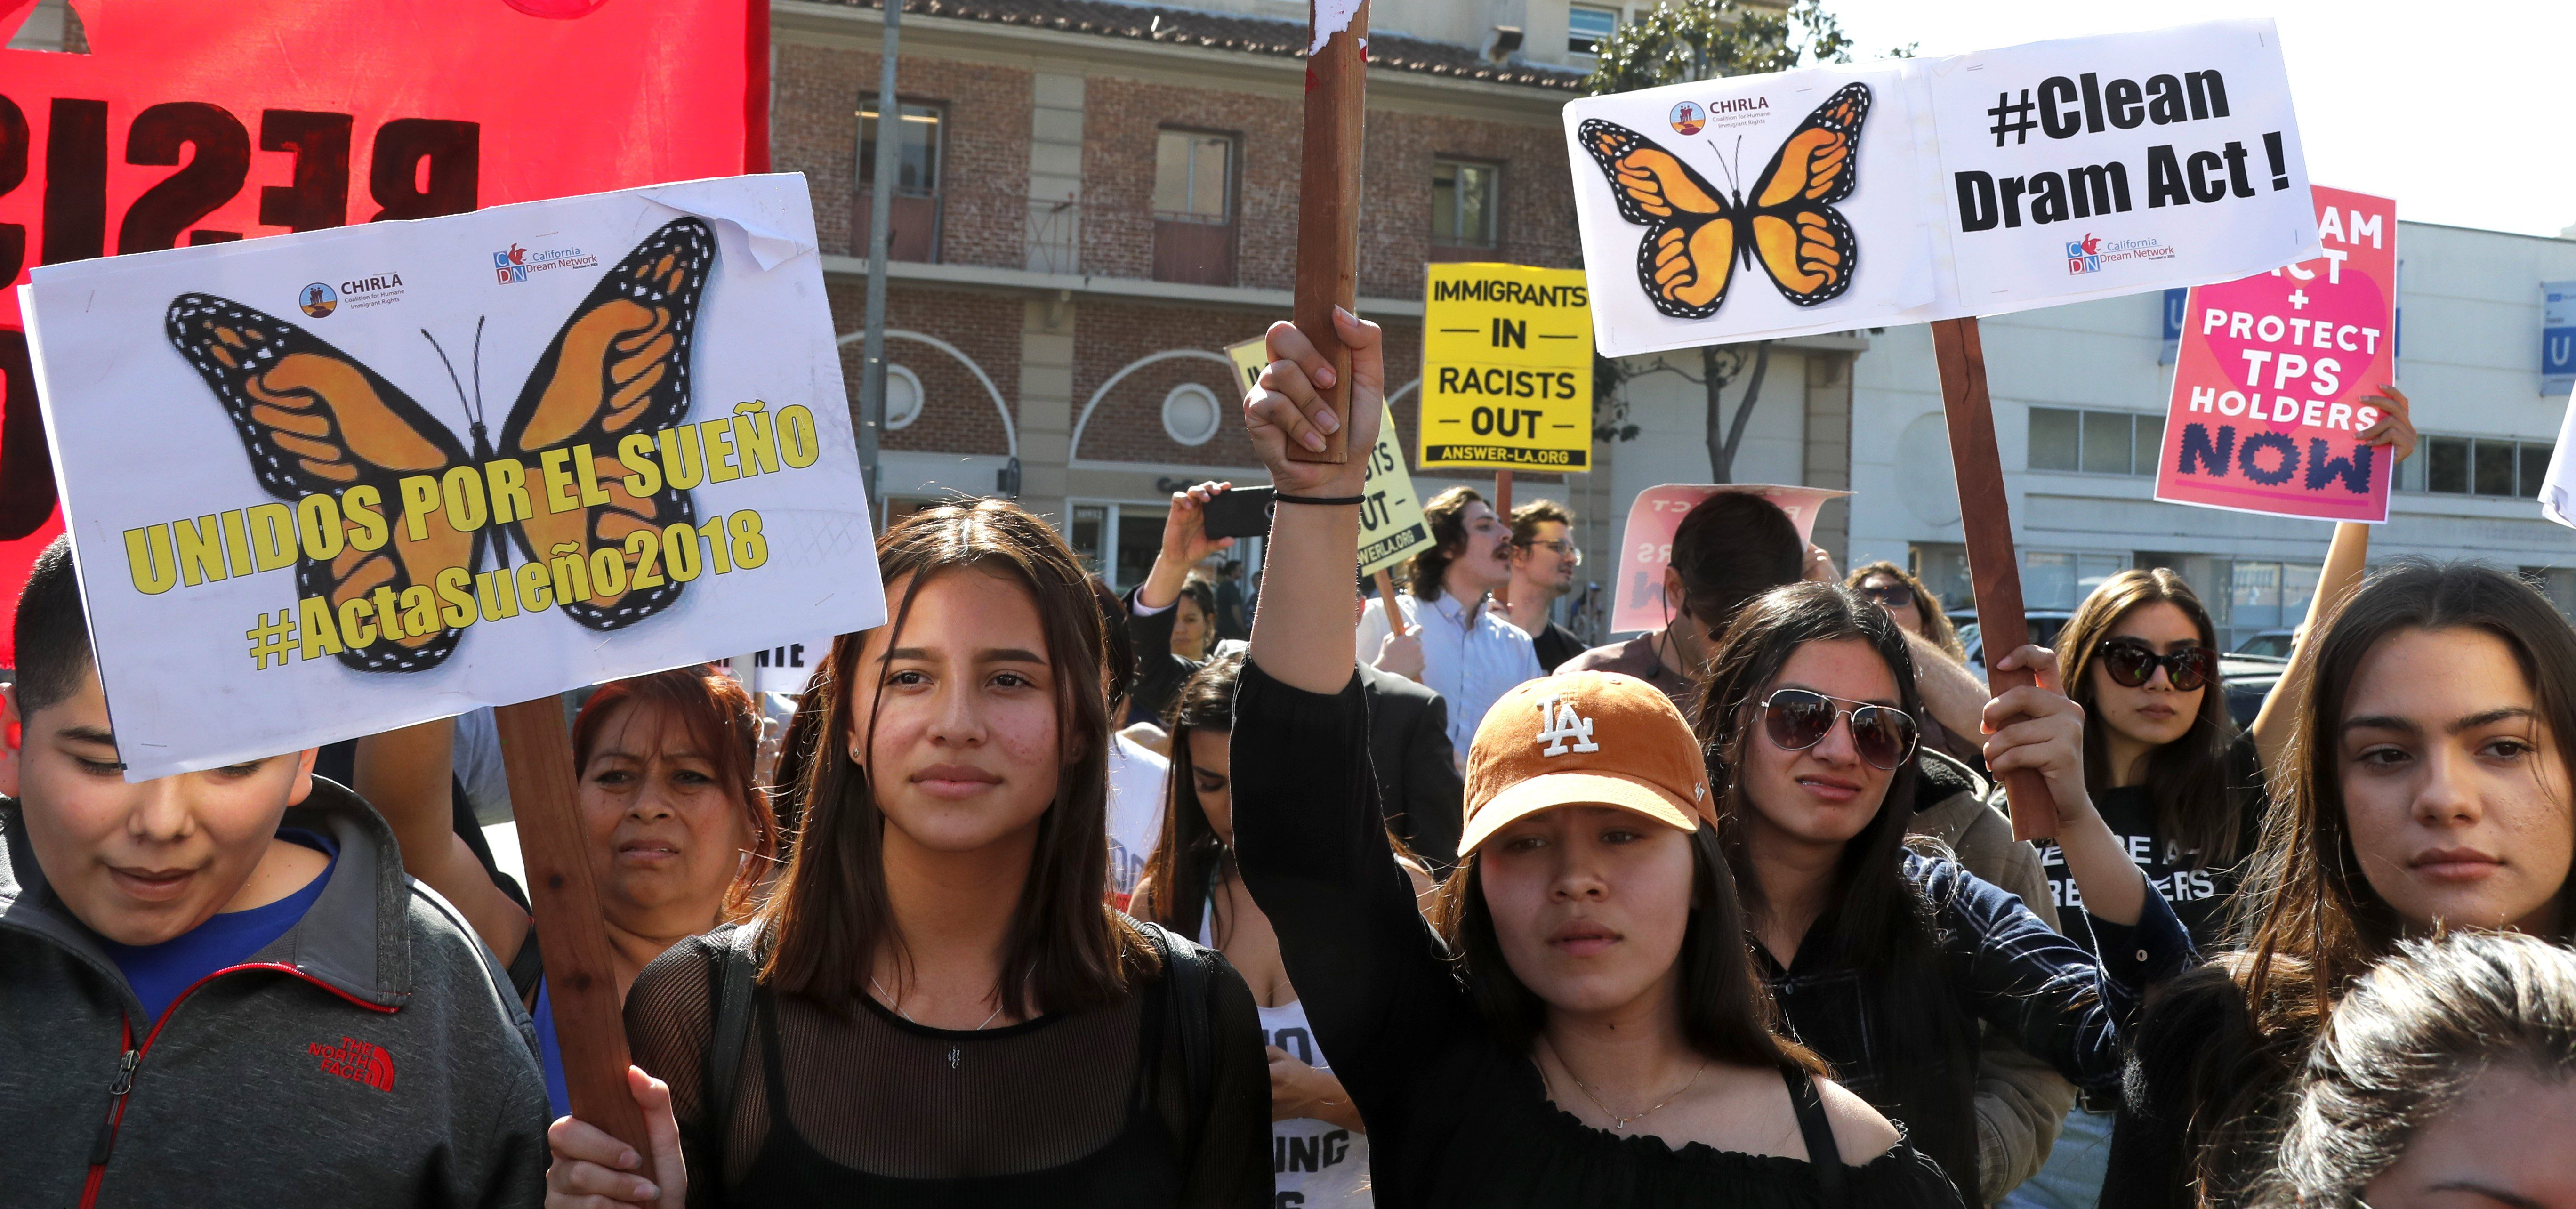 Los Angeles (United States), 03/02/2018.- Dreamers join hundreds of demonstrators calling for DACA (Deferred Action for Childhood Arrivals) protection and protesting against US President Donald Trump in a national day of action in Los Angeles, California, USA, 03 February 2018. (Protestas, Estados Unidos) EFE